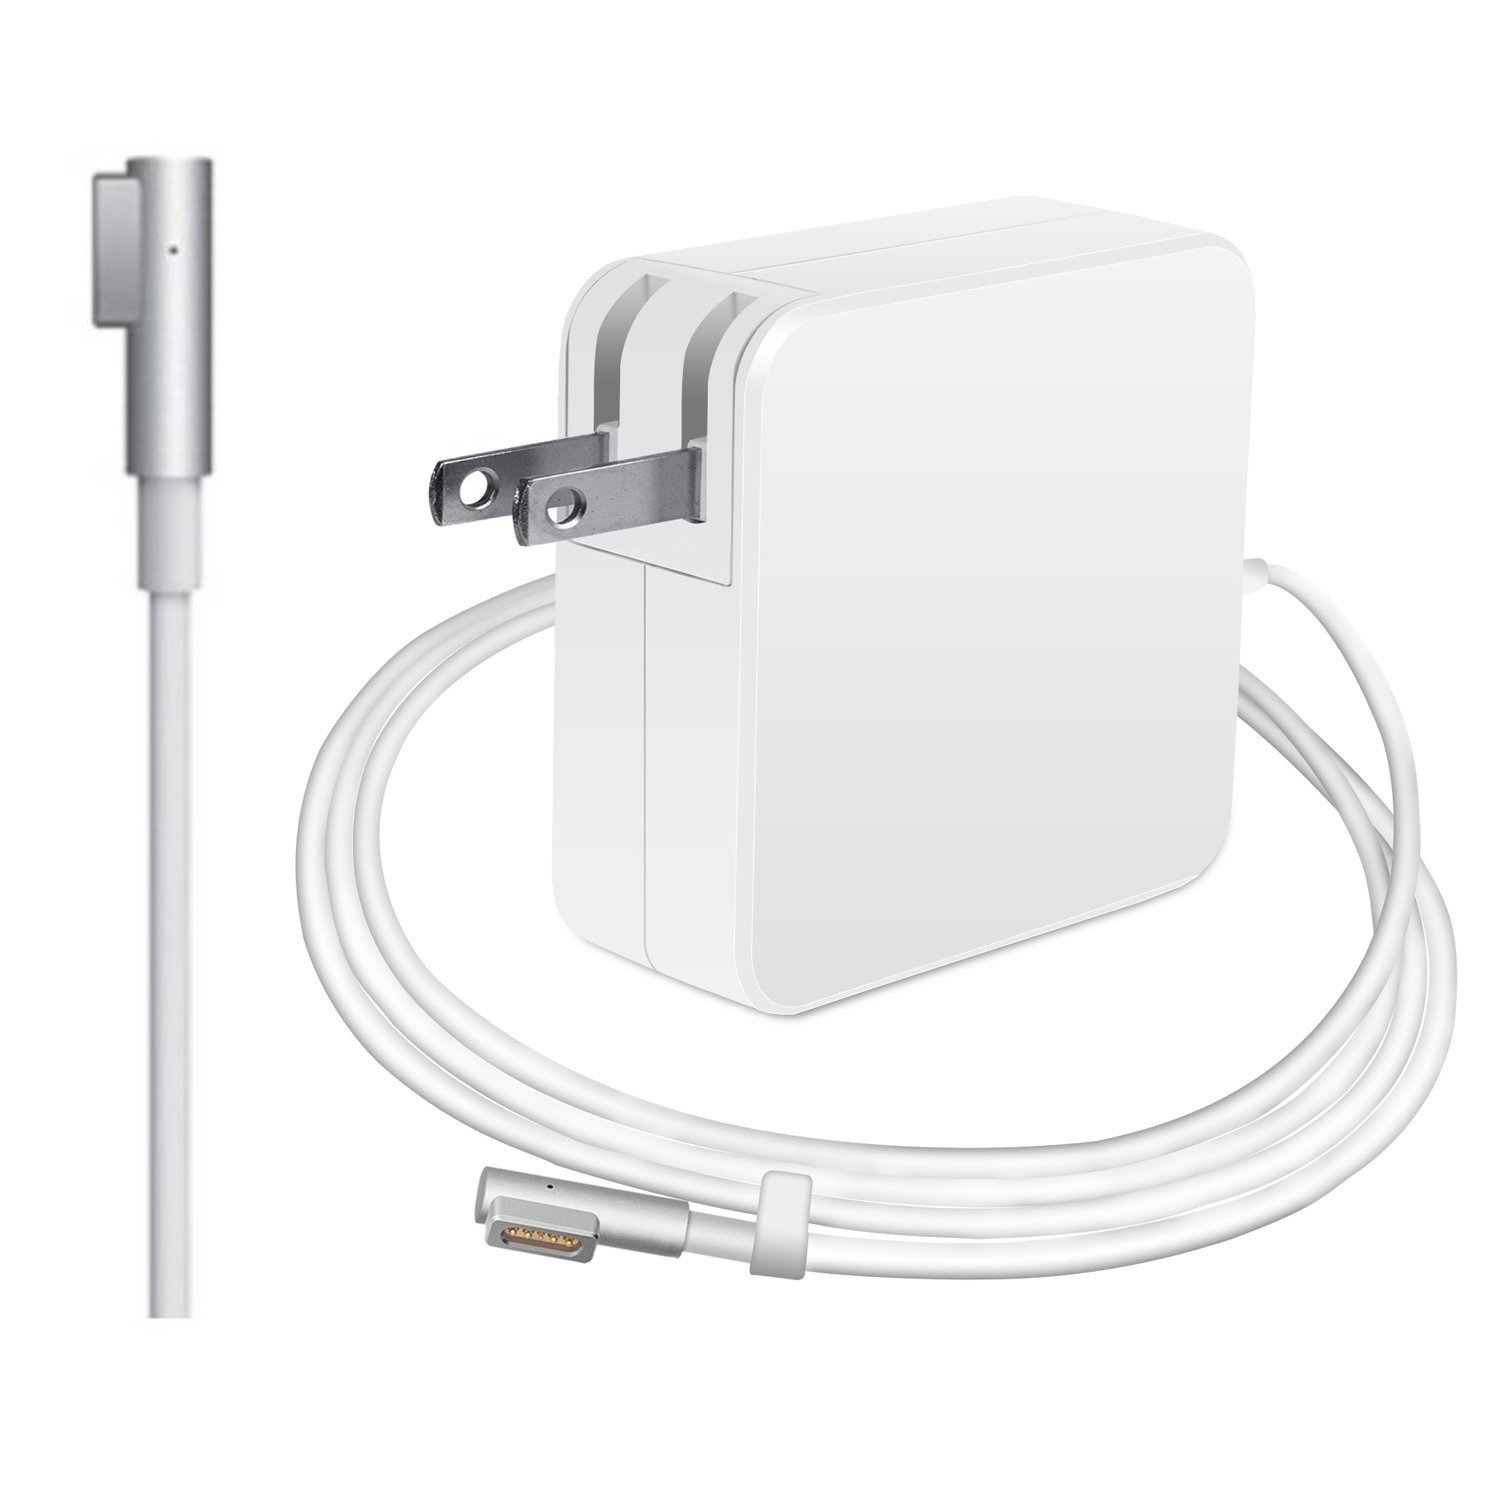 MacBook Pro Charger, Oakwill Replacement 60W Magsafe (L) Shape Connector Ac Power Cable Adapter Mac Laptop Power Supply for MacBook and 13-inch MacBook Pro (Before Mid 2012 Models)